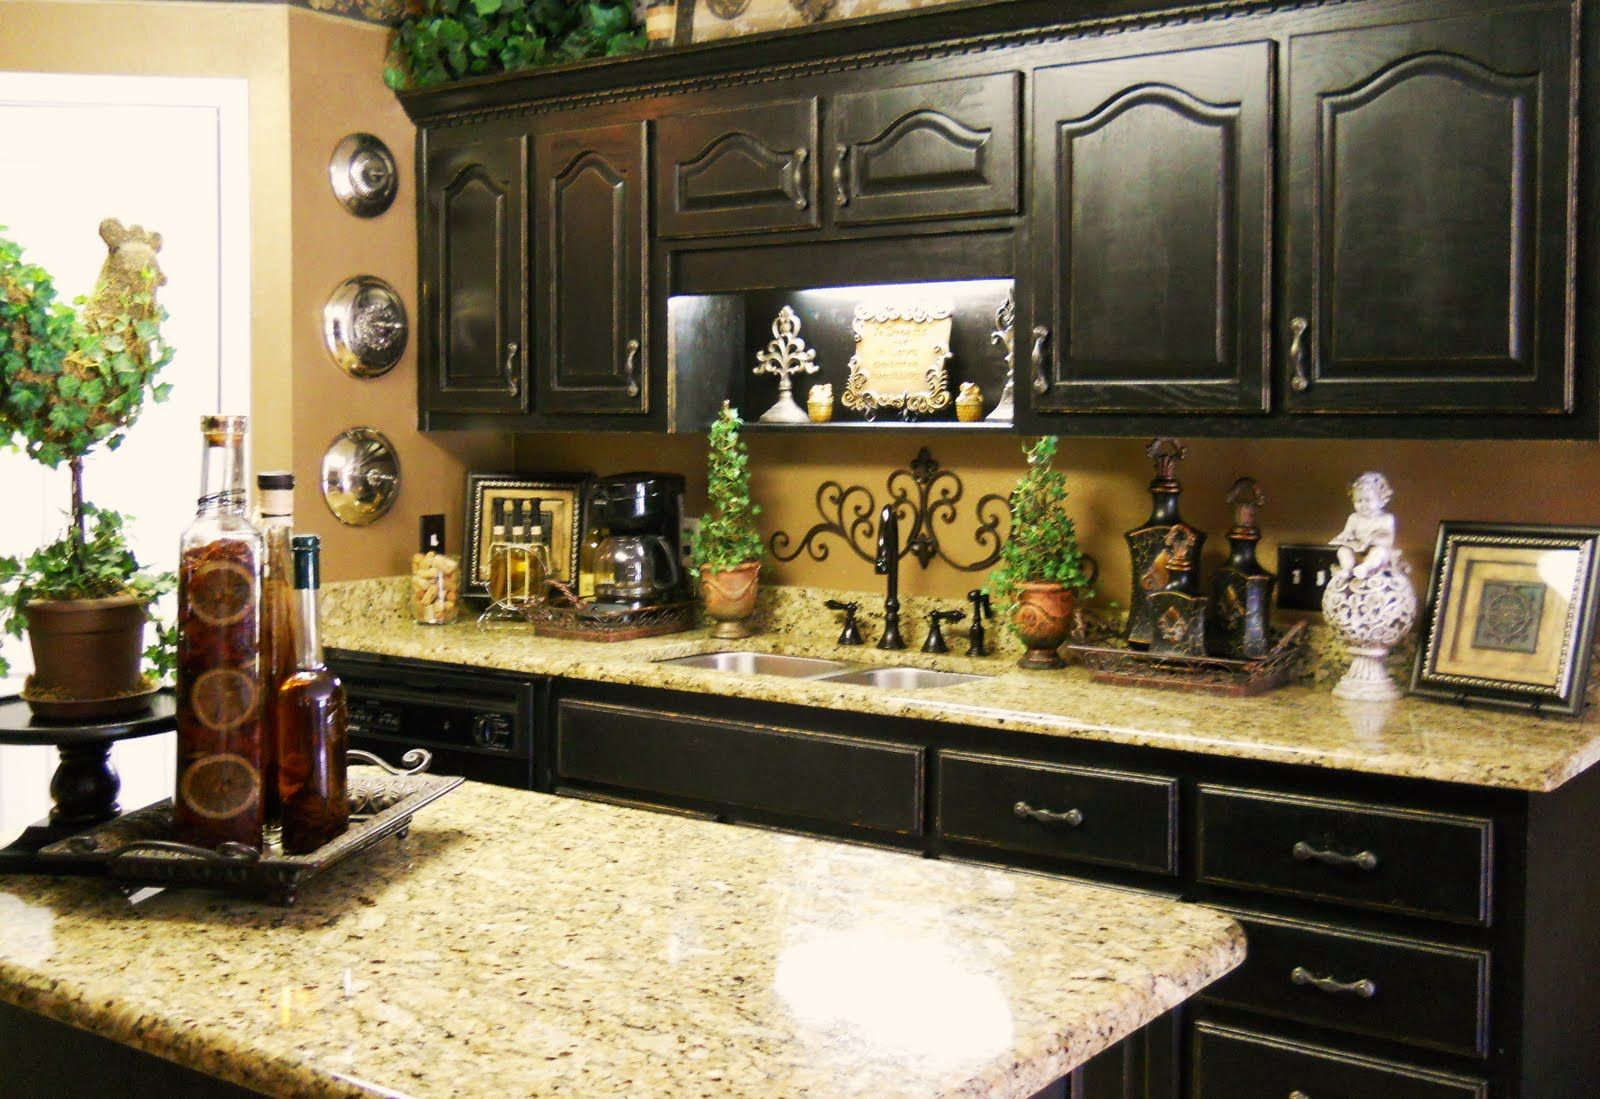 wine-kitchen-decor.jpg (8×8 Dark brown wine themed kitchen